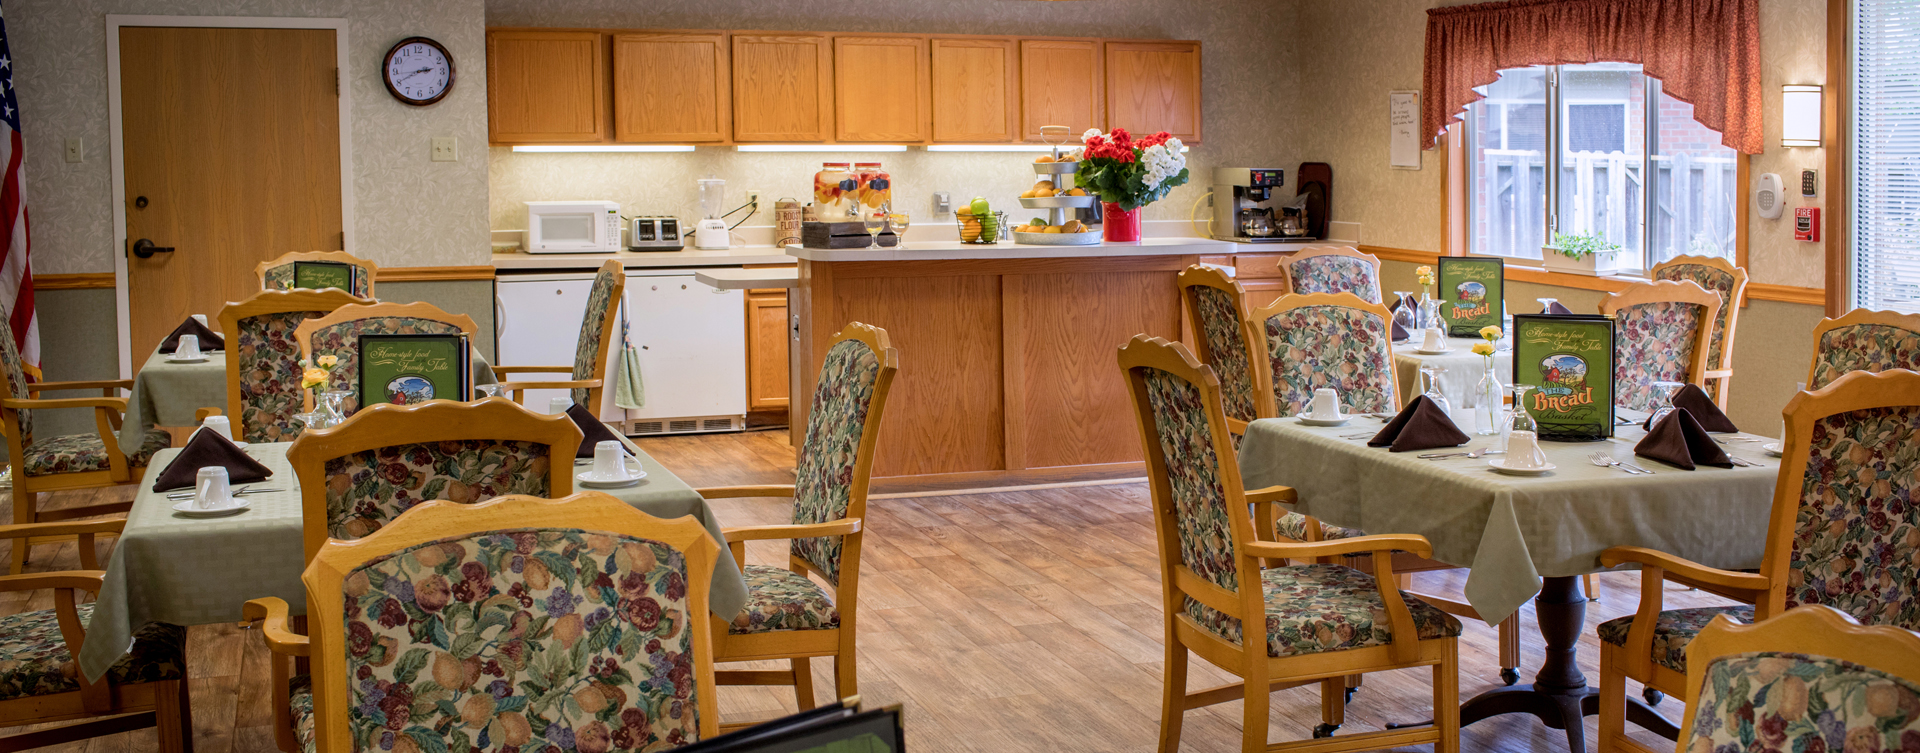 Mary B's country kitchen evokes a sense of home and reconnects residents to past life skills at Bickford of Lancaster